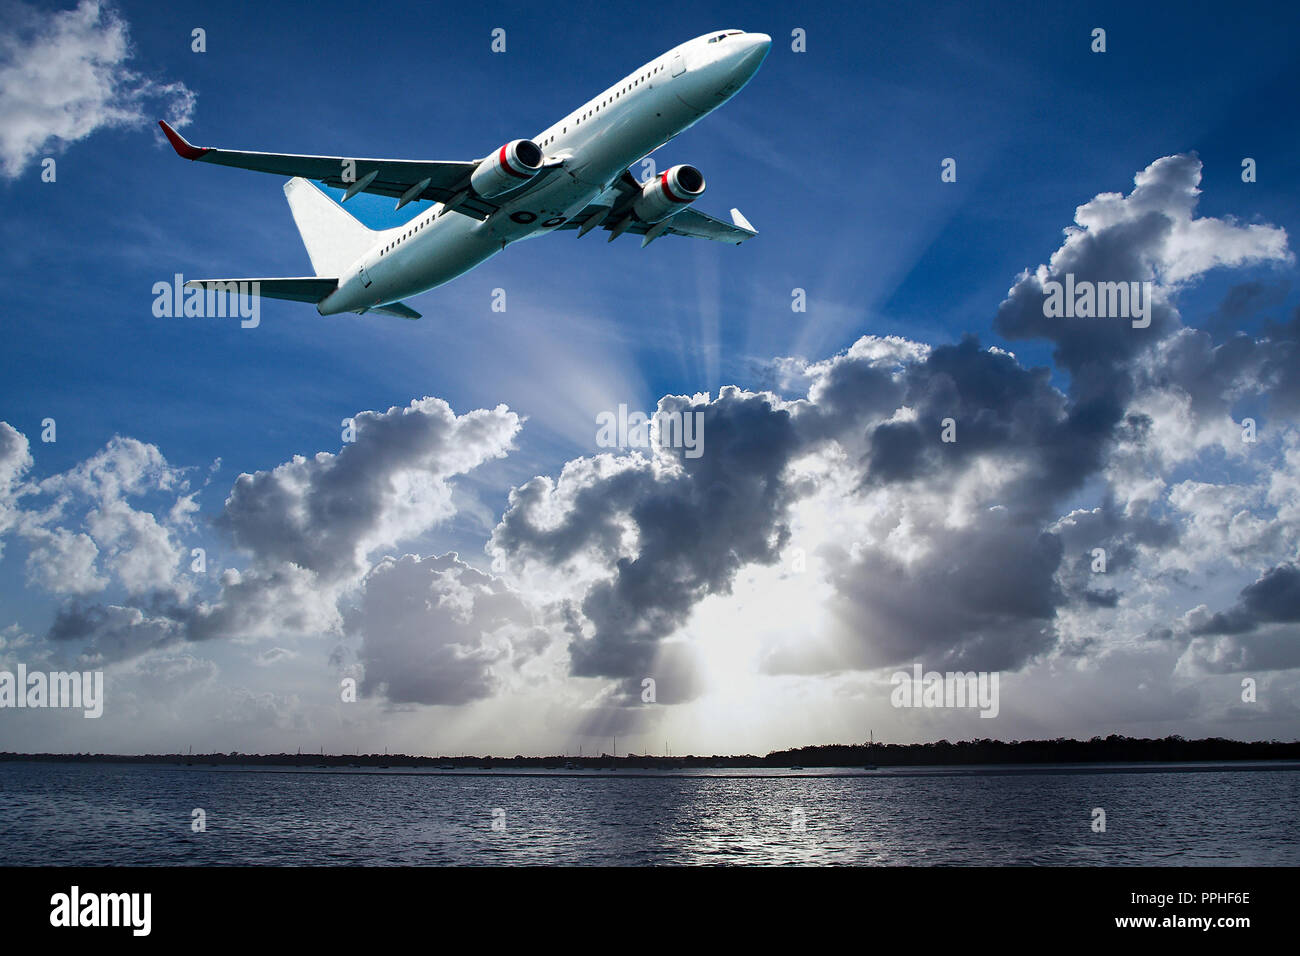 Jet aircraft departing Mascot Airport flying over Botany Bay in a vibrant blue sky, with bright white coloured Sun Rays and cumulonimbus clouds. Sydney - Stock Image